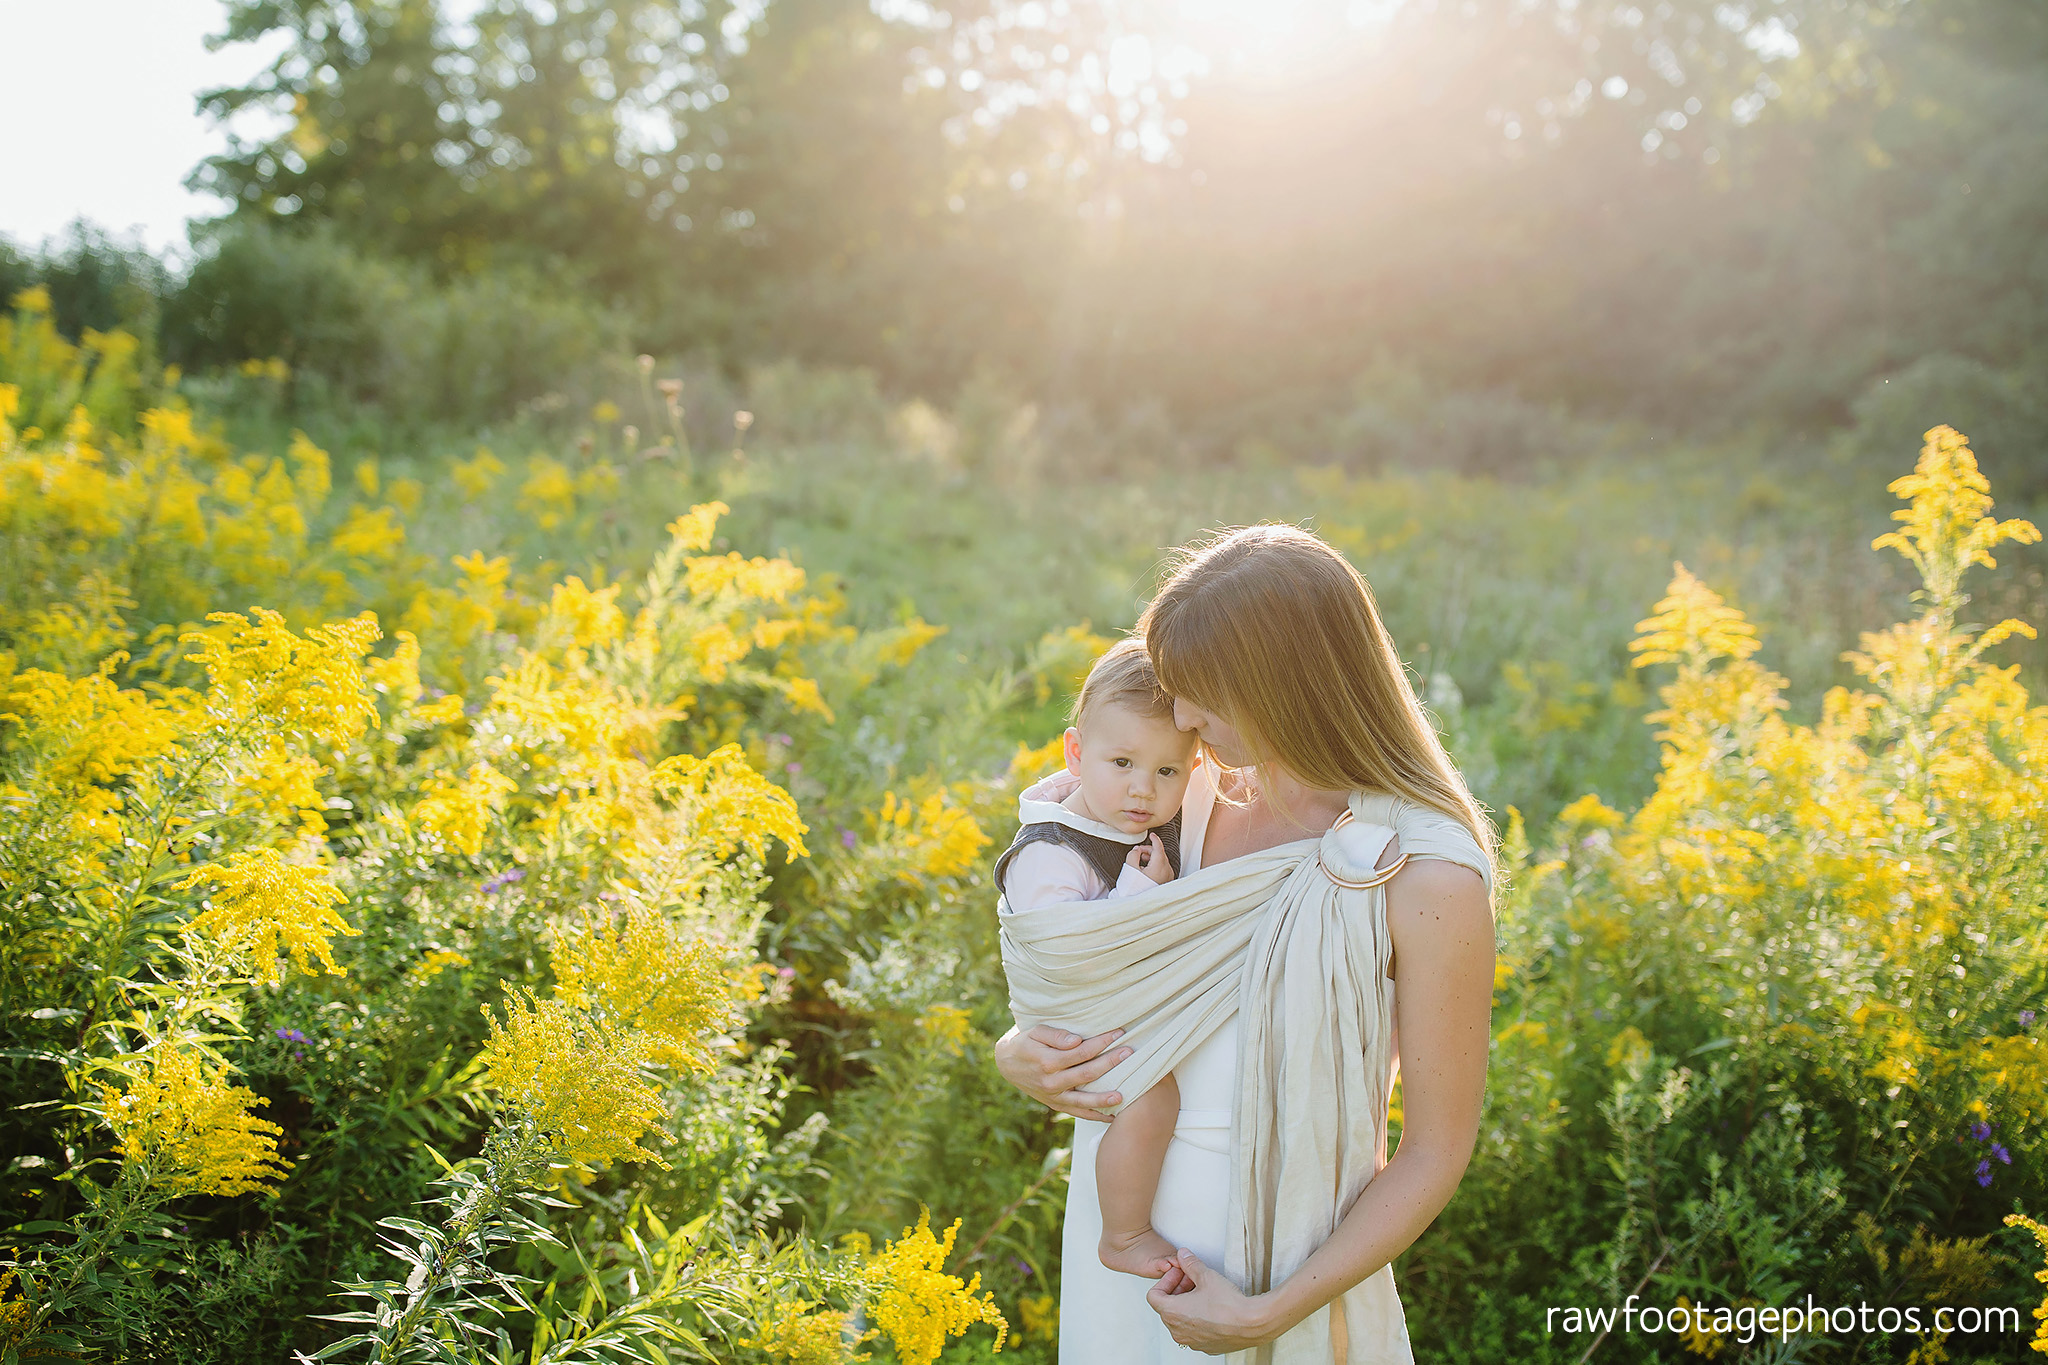 London_Ontario_Family_photographer-Fall_Minis-Woods-Forest-Nature-Candid-Lifestyle-Raw_Footage_Photography020.jpg